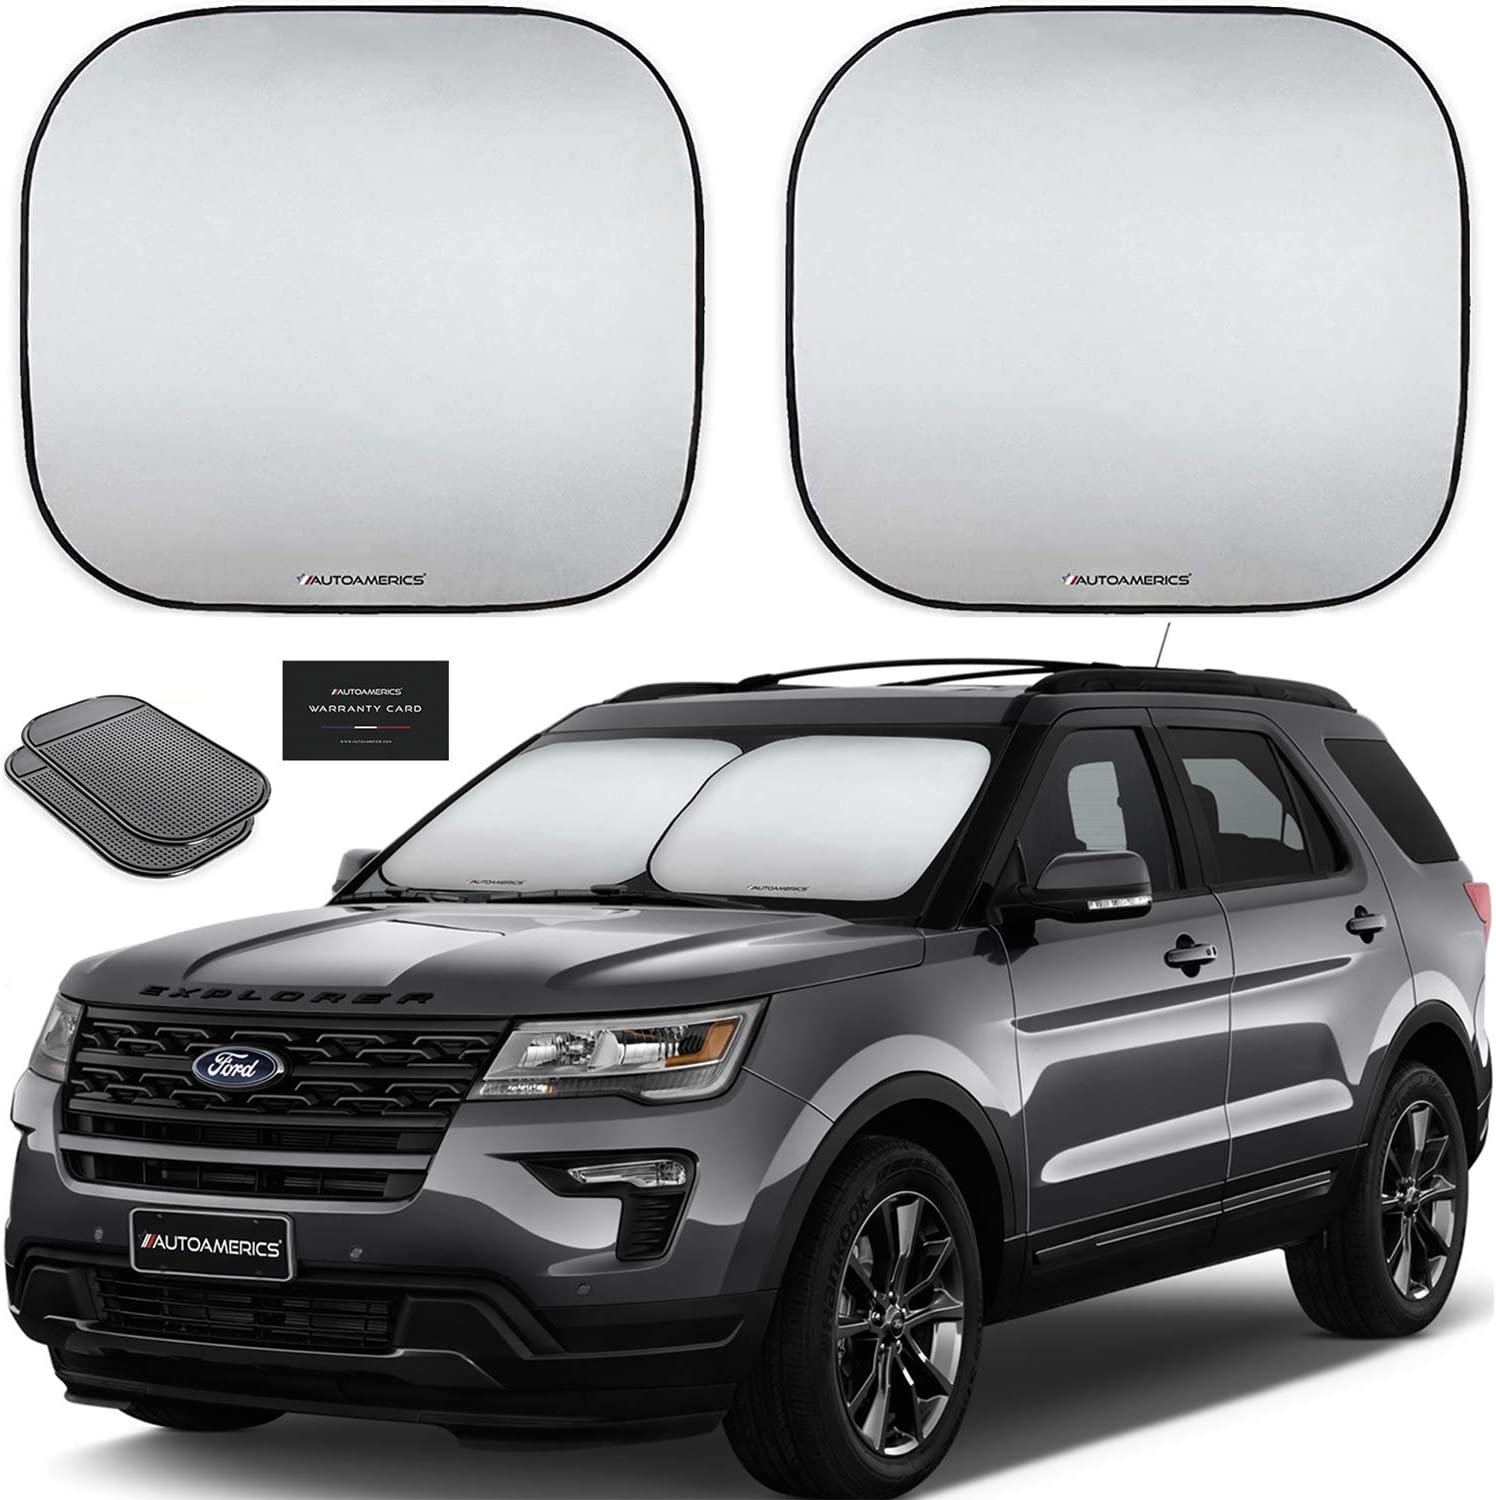 X AUTOHAUX 2 Pair Side Window Sun Shades Protection Black Mesh for Car Vehicle SUV Truck Van 24.80x16.54 Inch